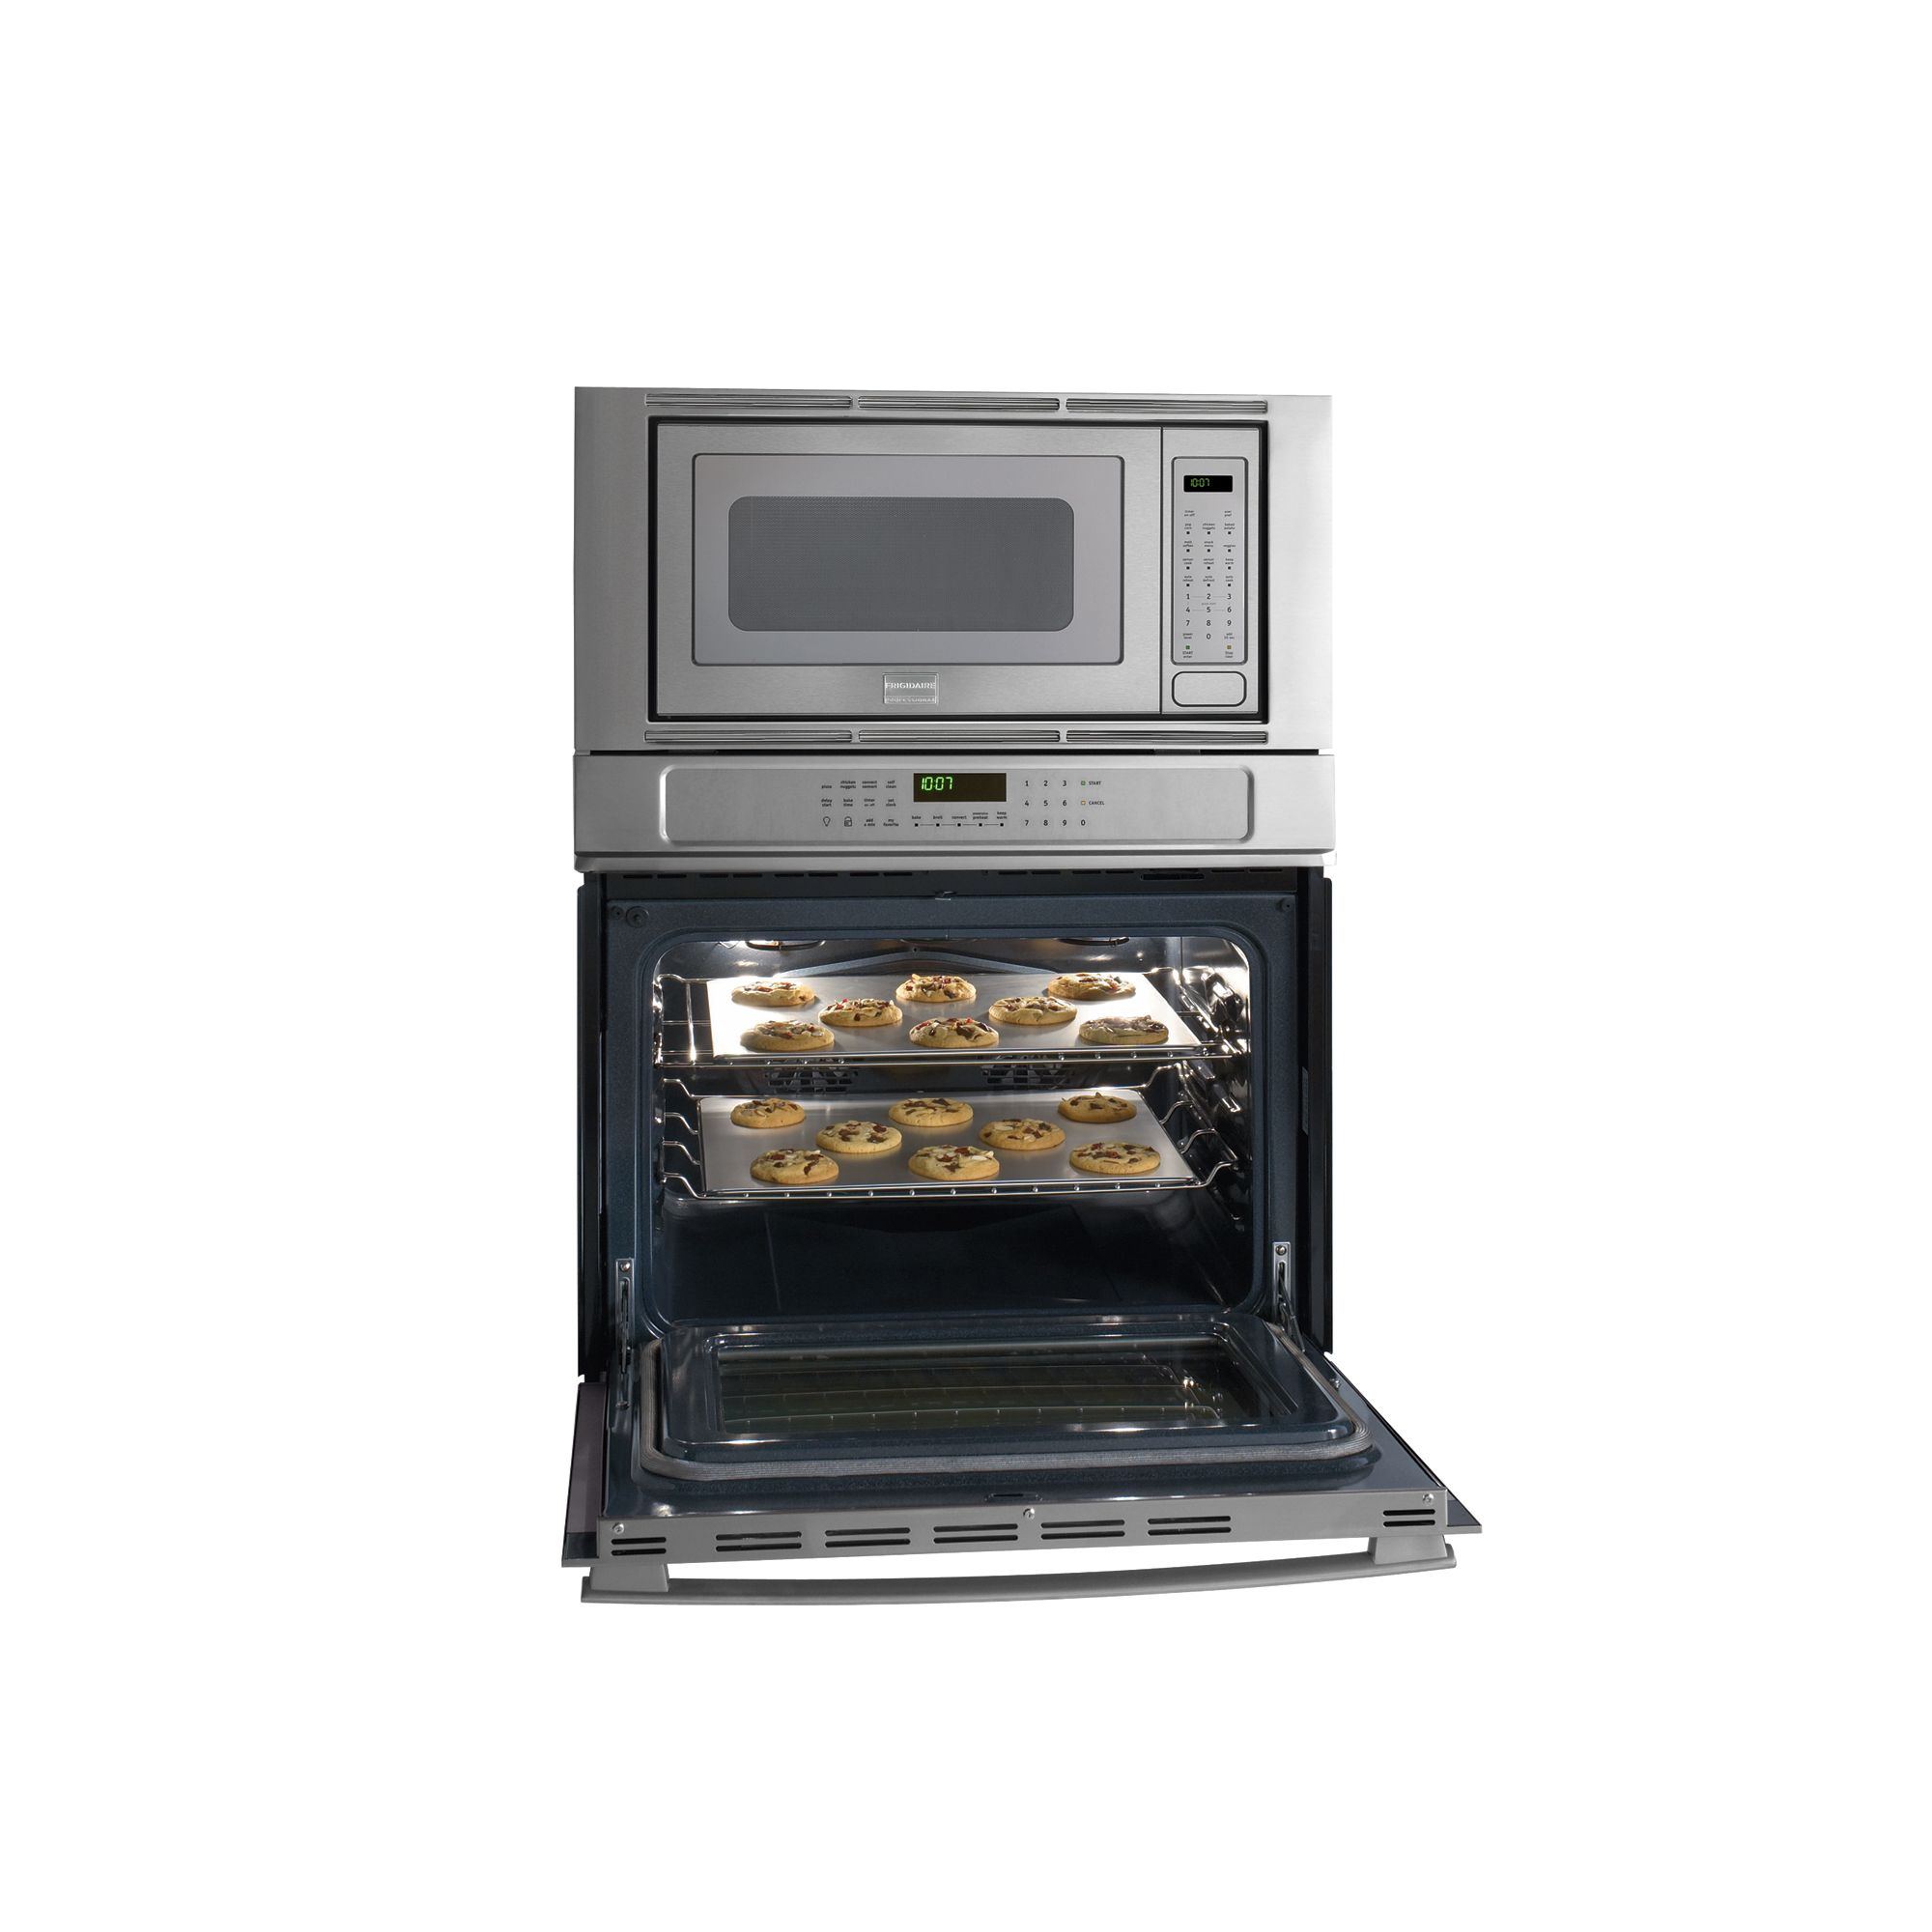 "Frigidaire 30"" Convection Wall Oven w/ Microwave"